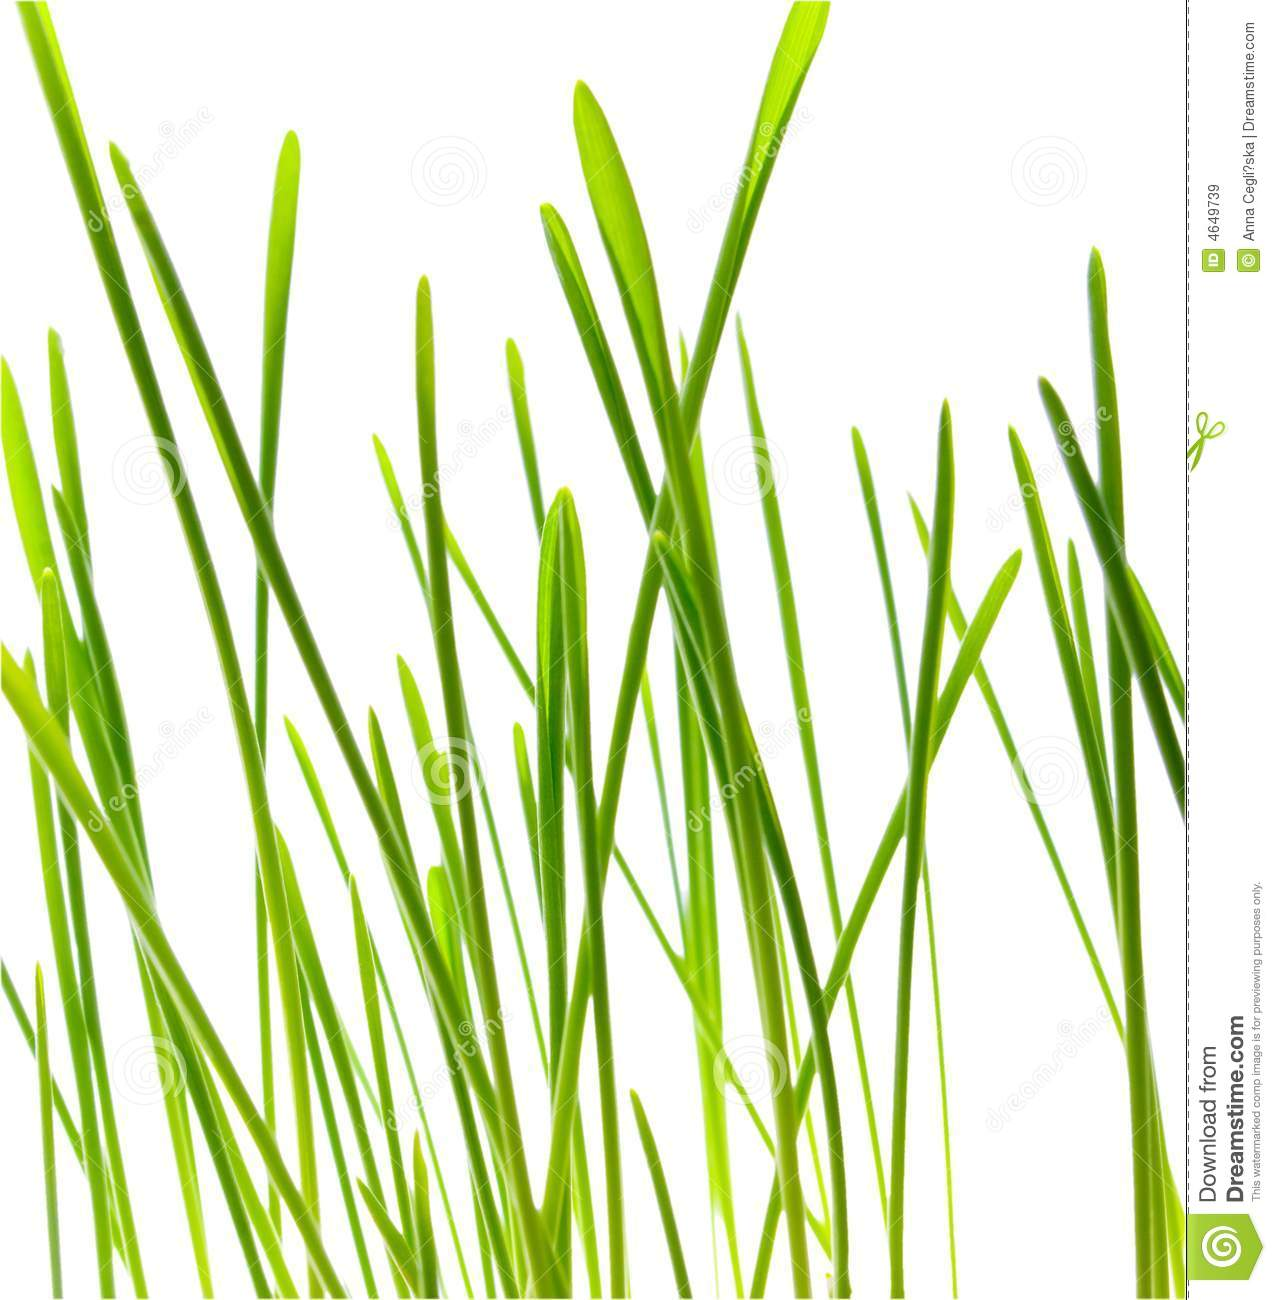 Green Blade Of Grass.